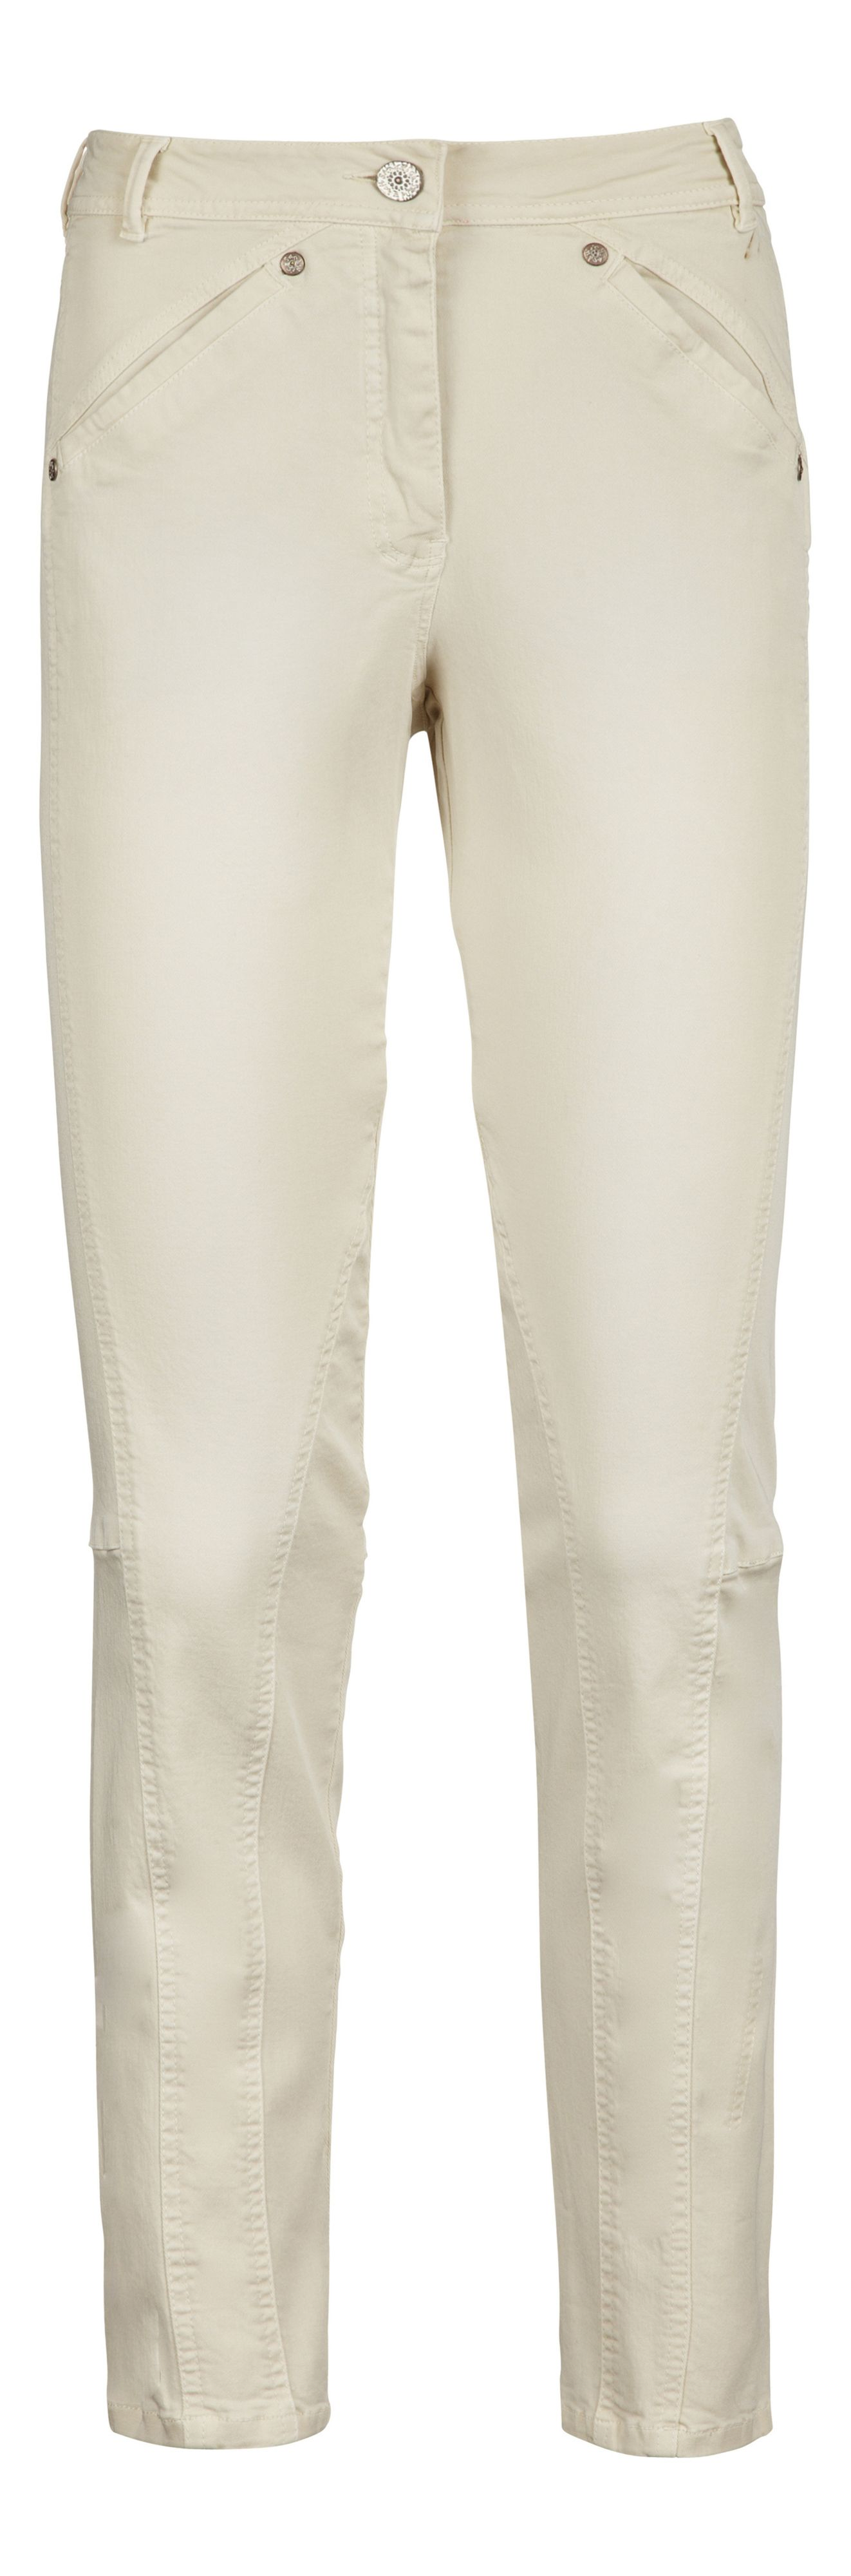 Cotton stretch trouser